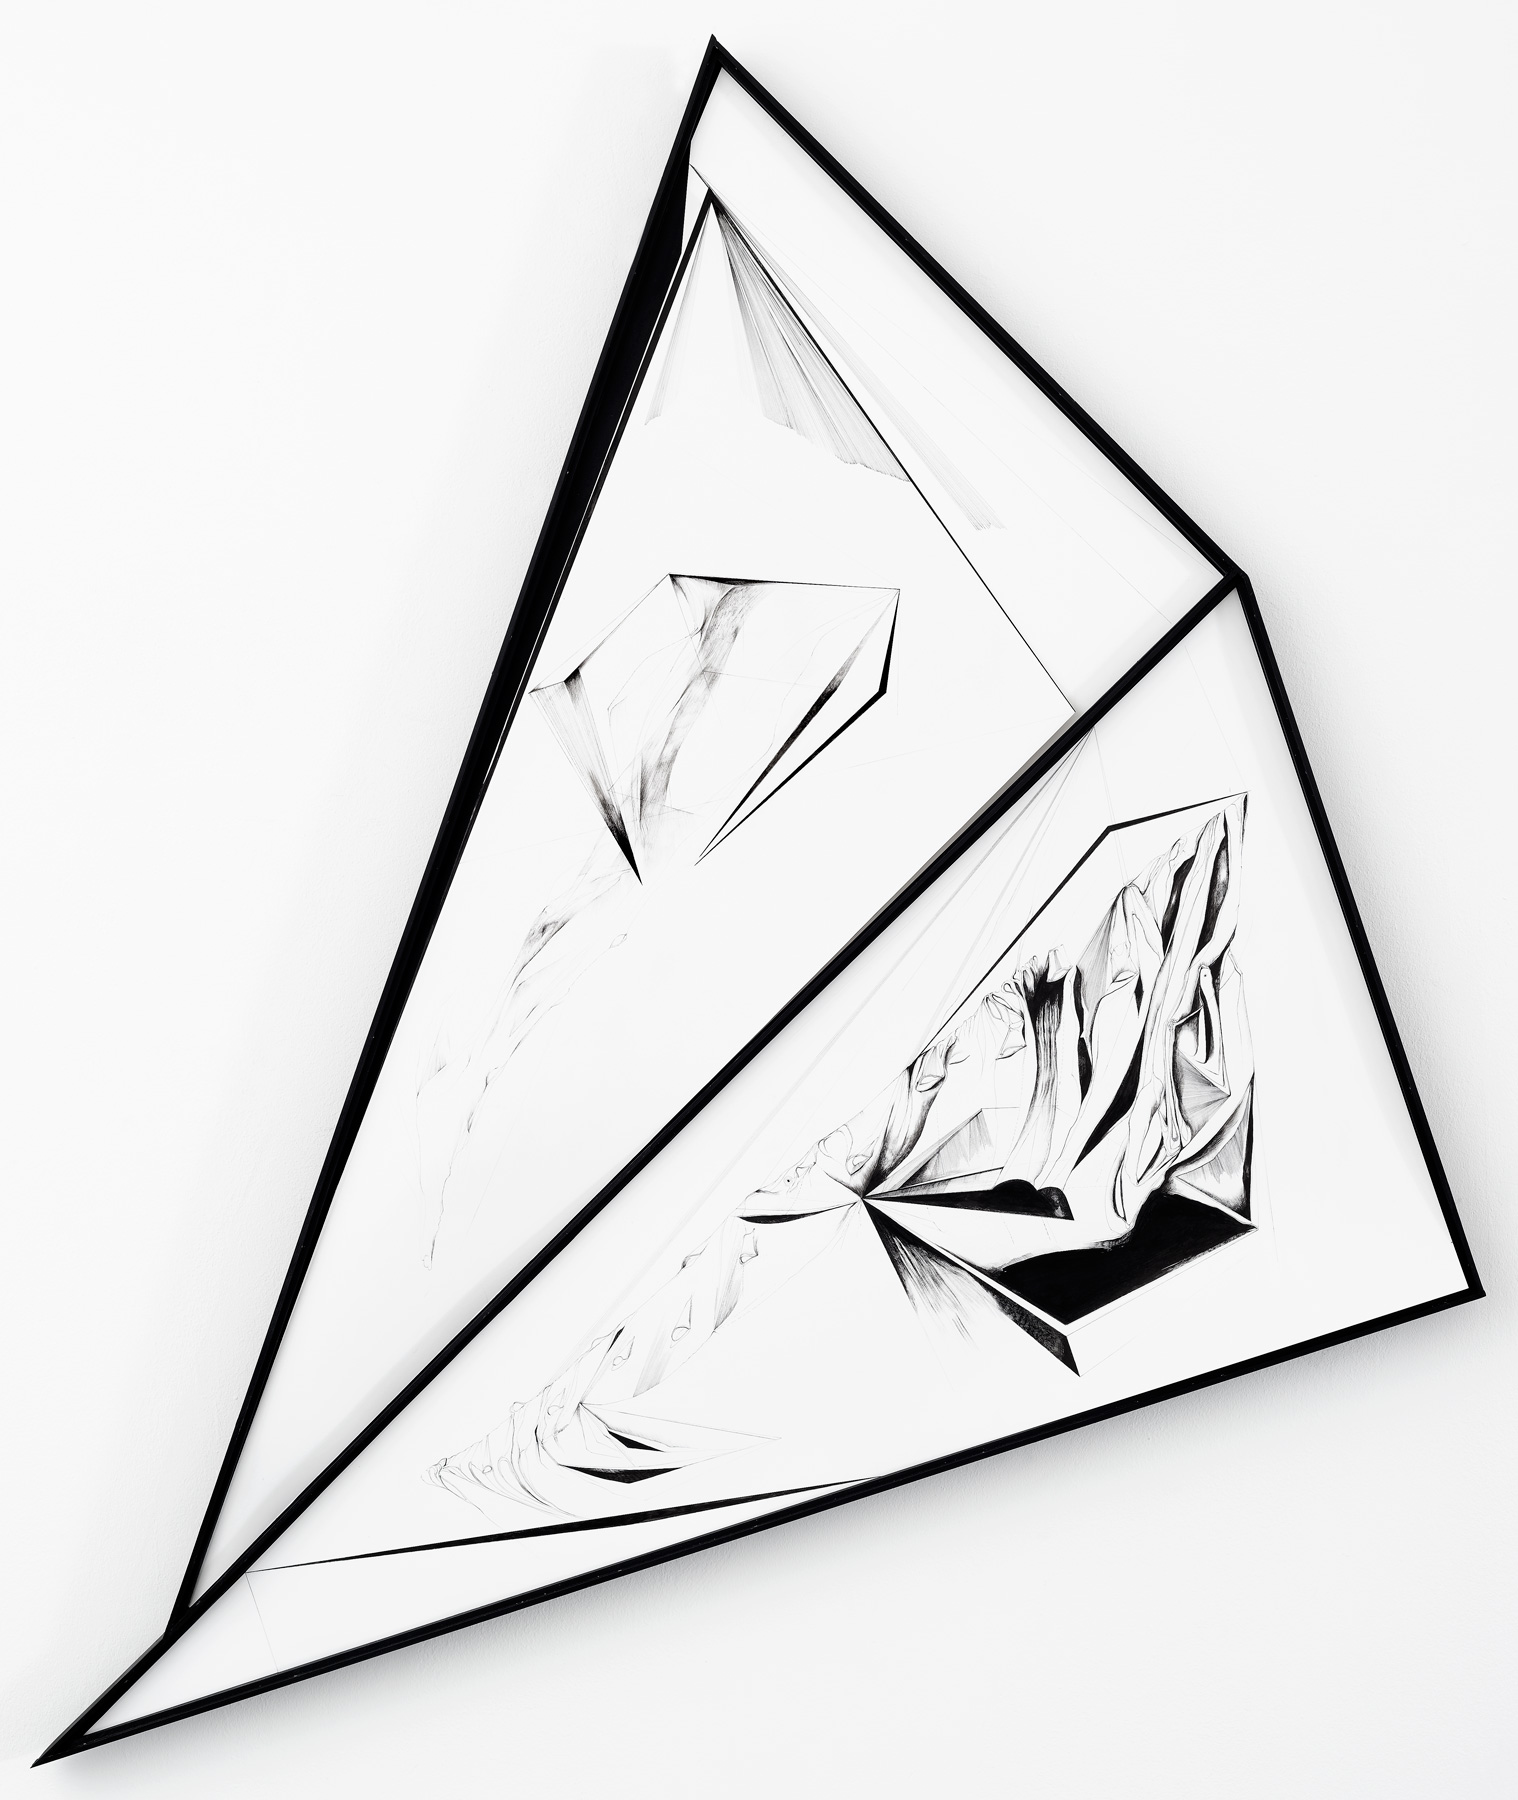 Nina Annabelle Märkl | Scapes 7 | 120 x 140 cm | Ink on folded paper, Cutouts, wood | 2016